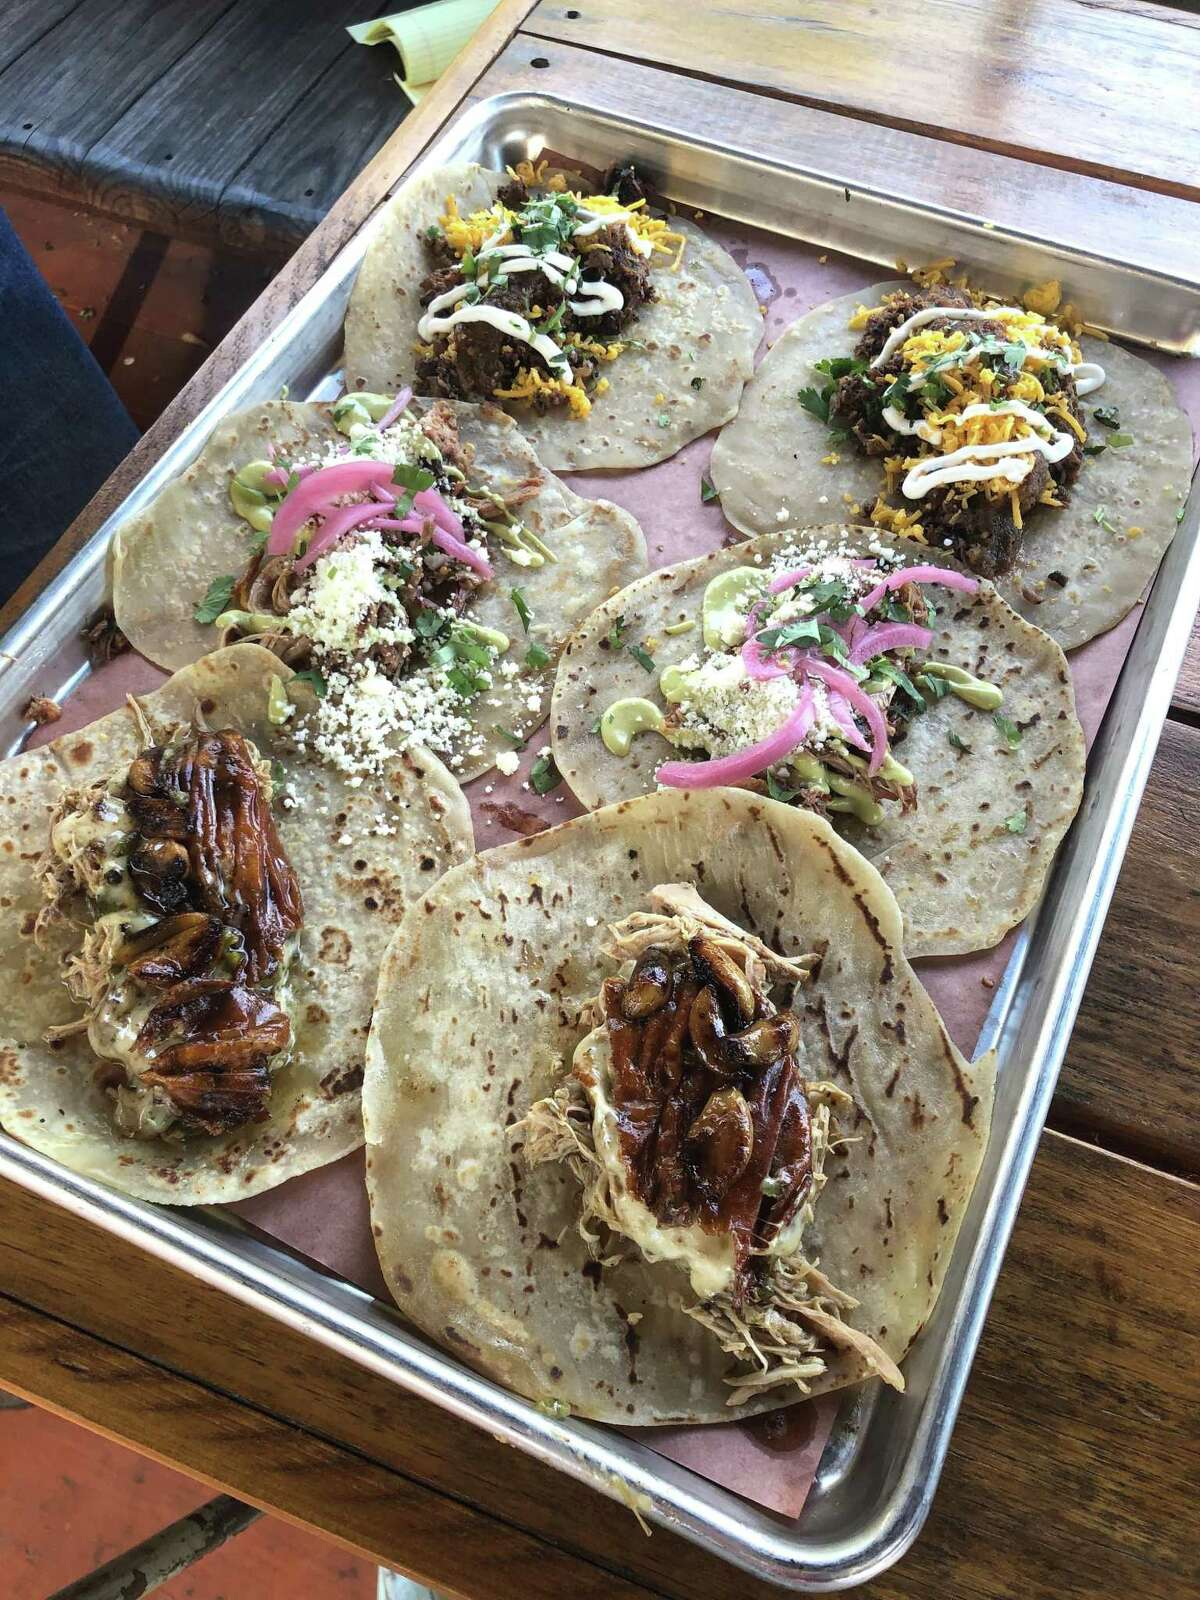 Brisket, pulled pork and shredded chicken tacos at The Pit Room